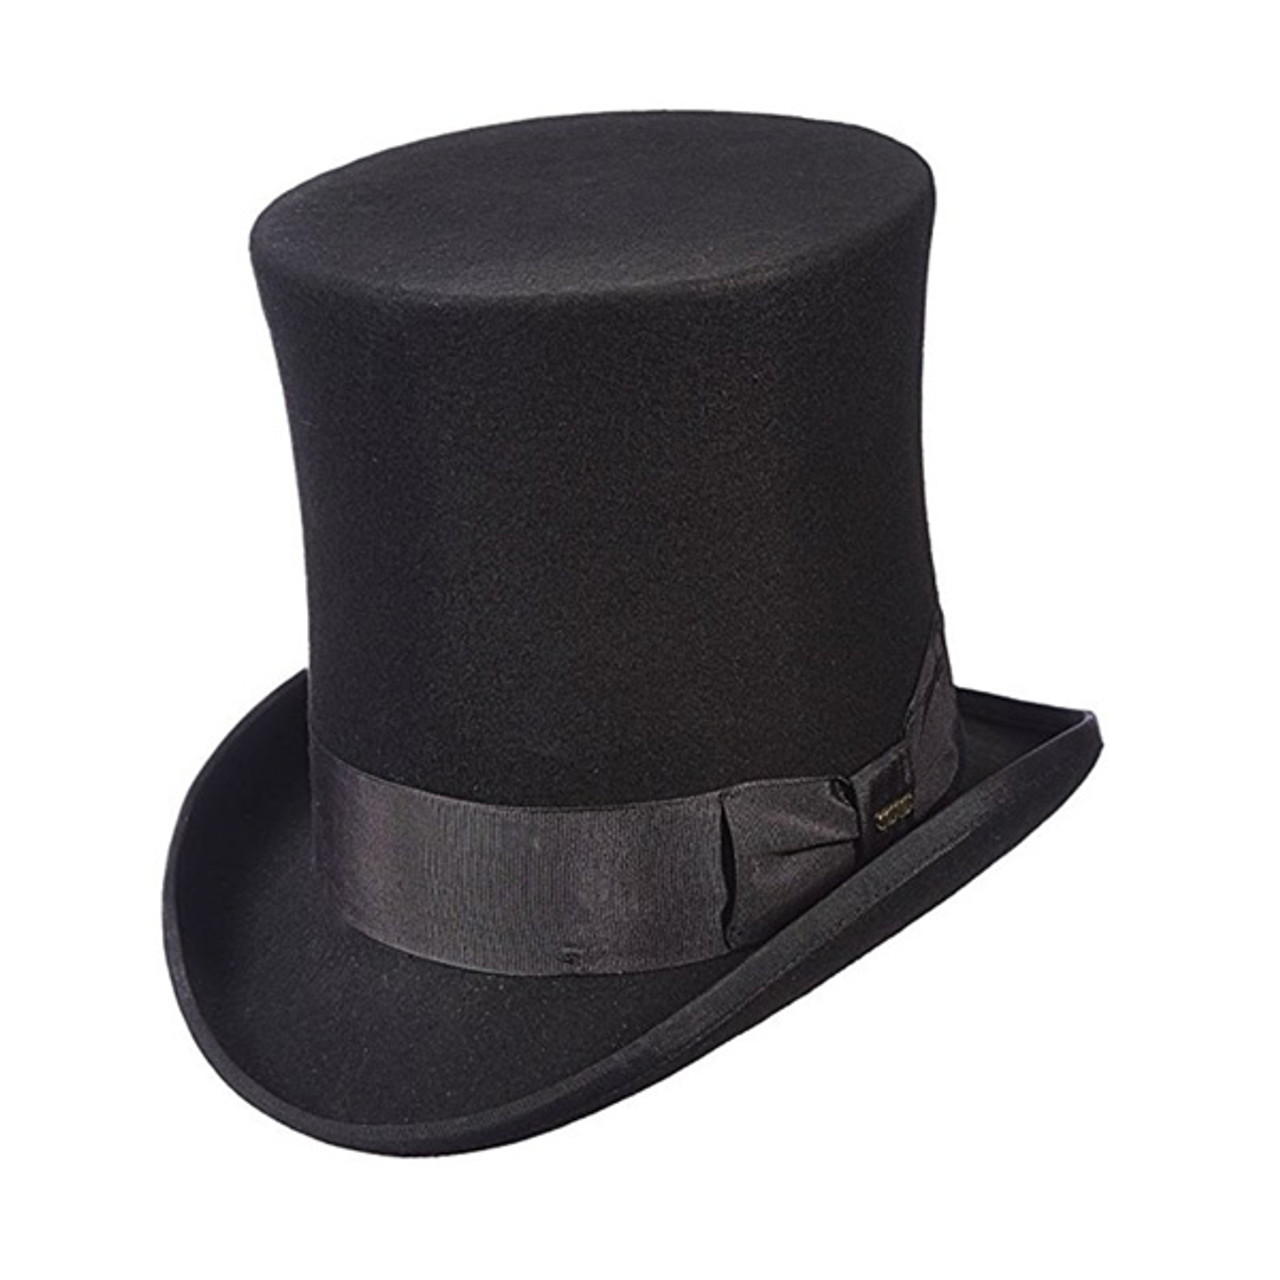 7dc3c3309 Dorfman Pacific - 8 Inch Tall Top Hat